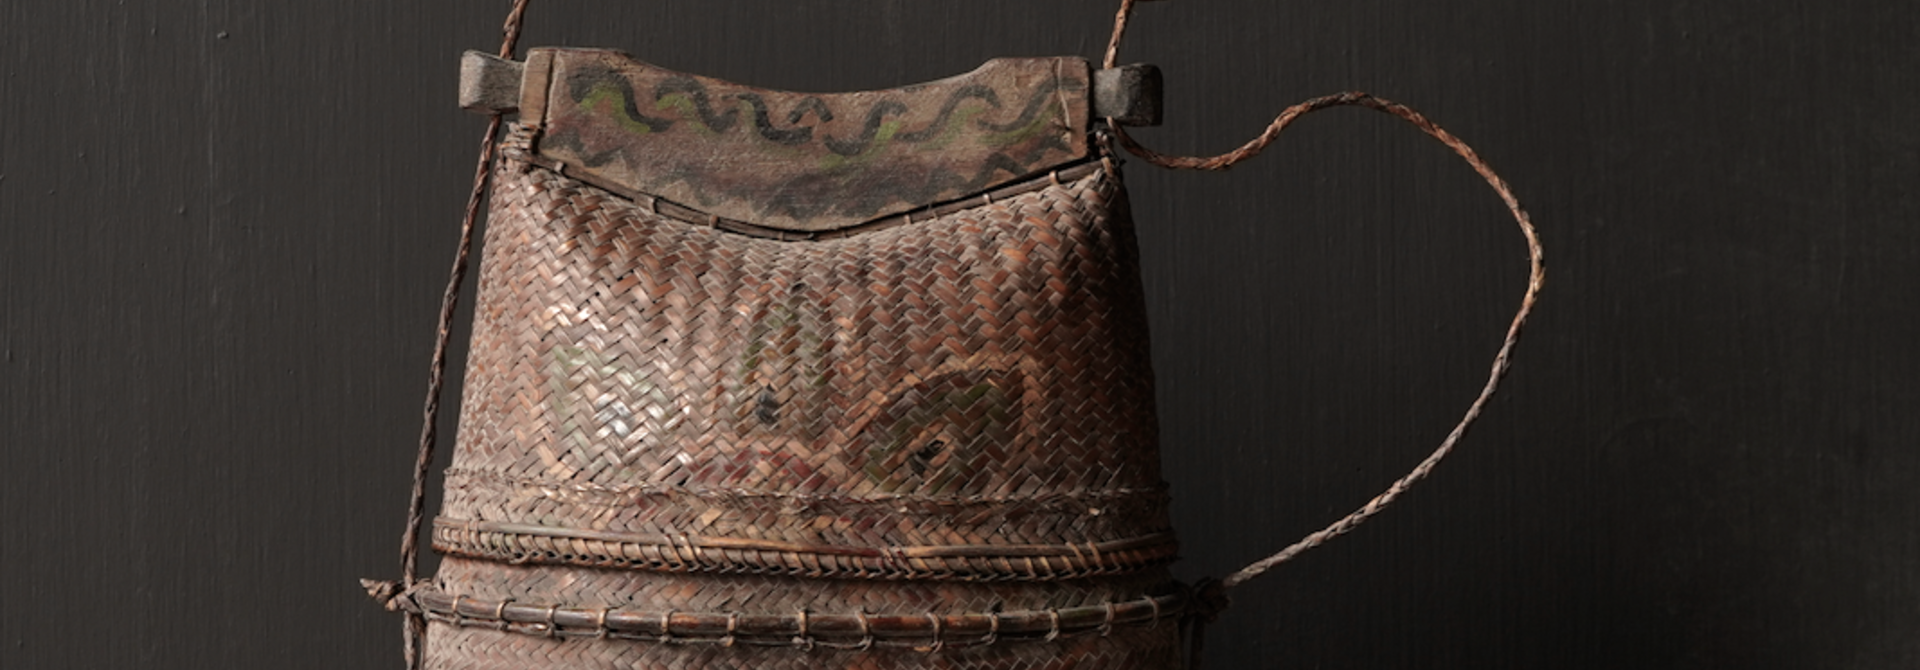 Authentic Indian Bag